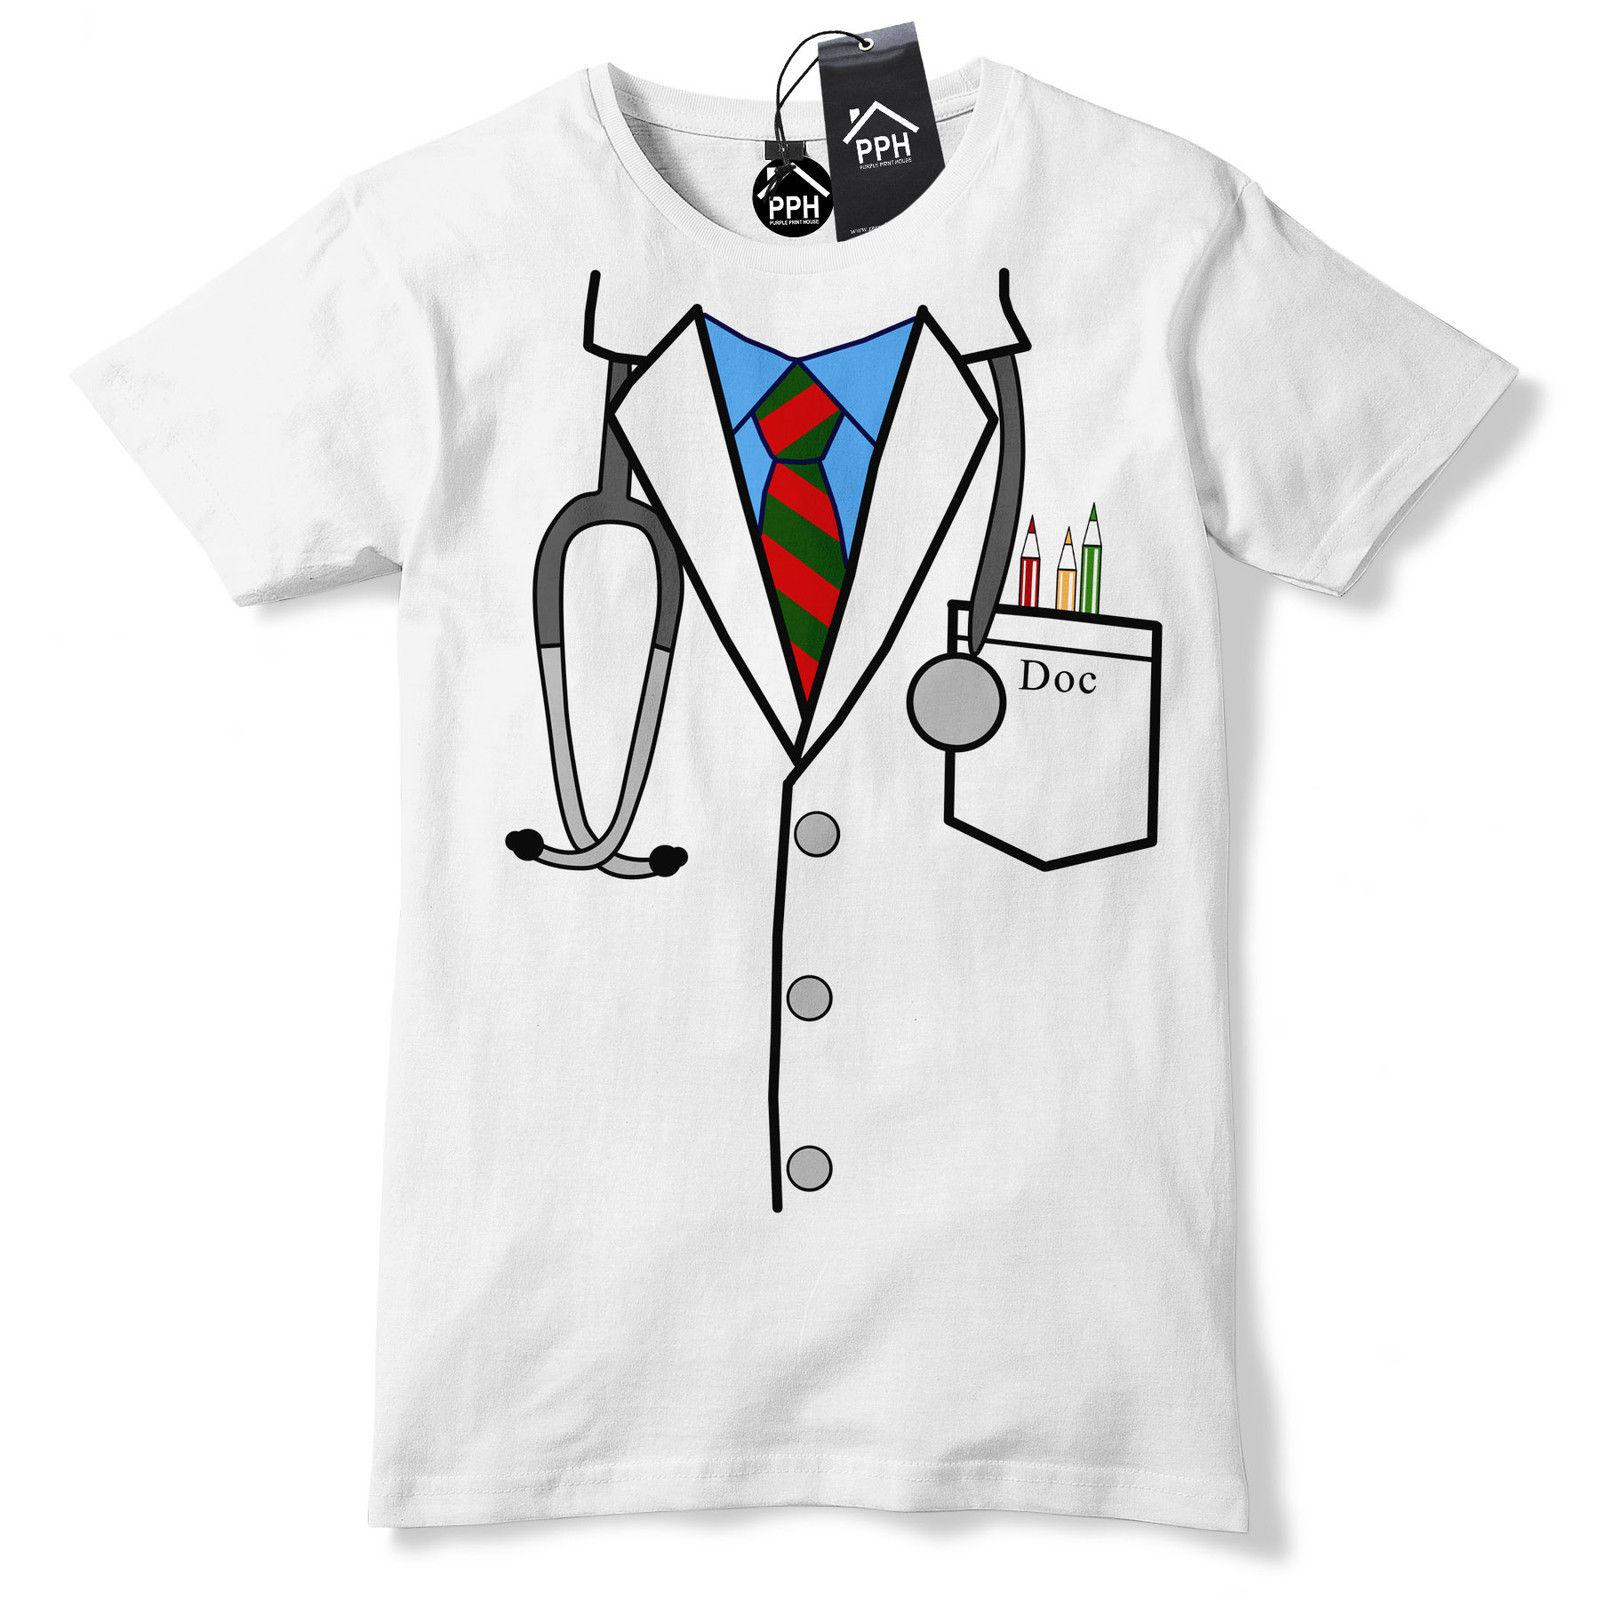 Doctor Uniform T Shirt Novelty Gift Hospital Nurse Surgeon Gift 547 Funny free shipping Unisex Casual tee gift